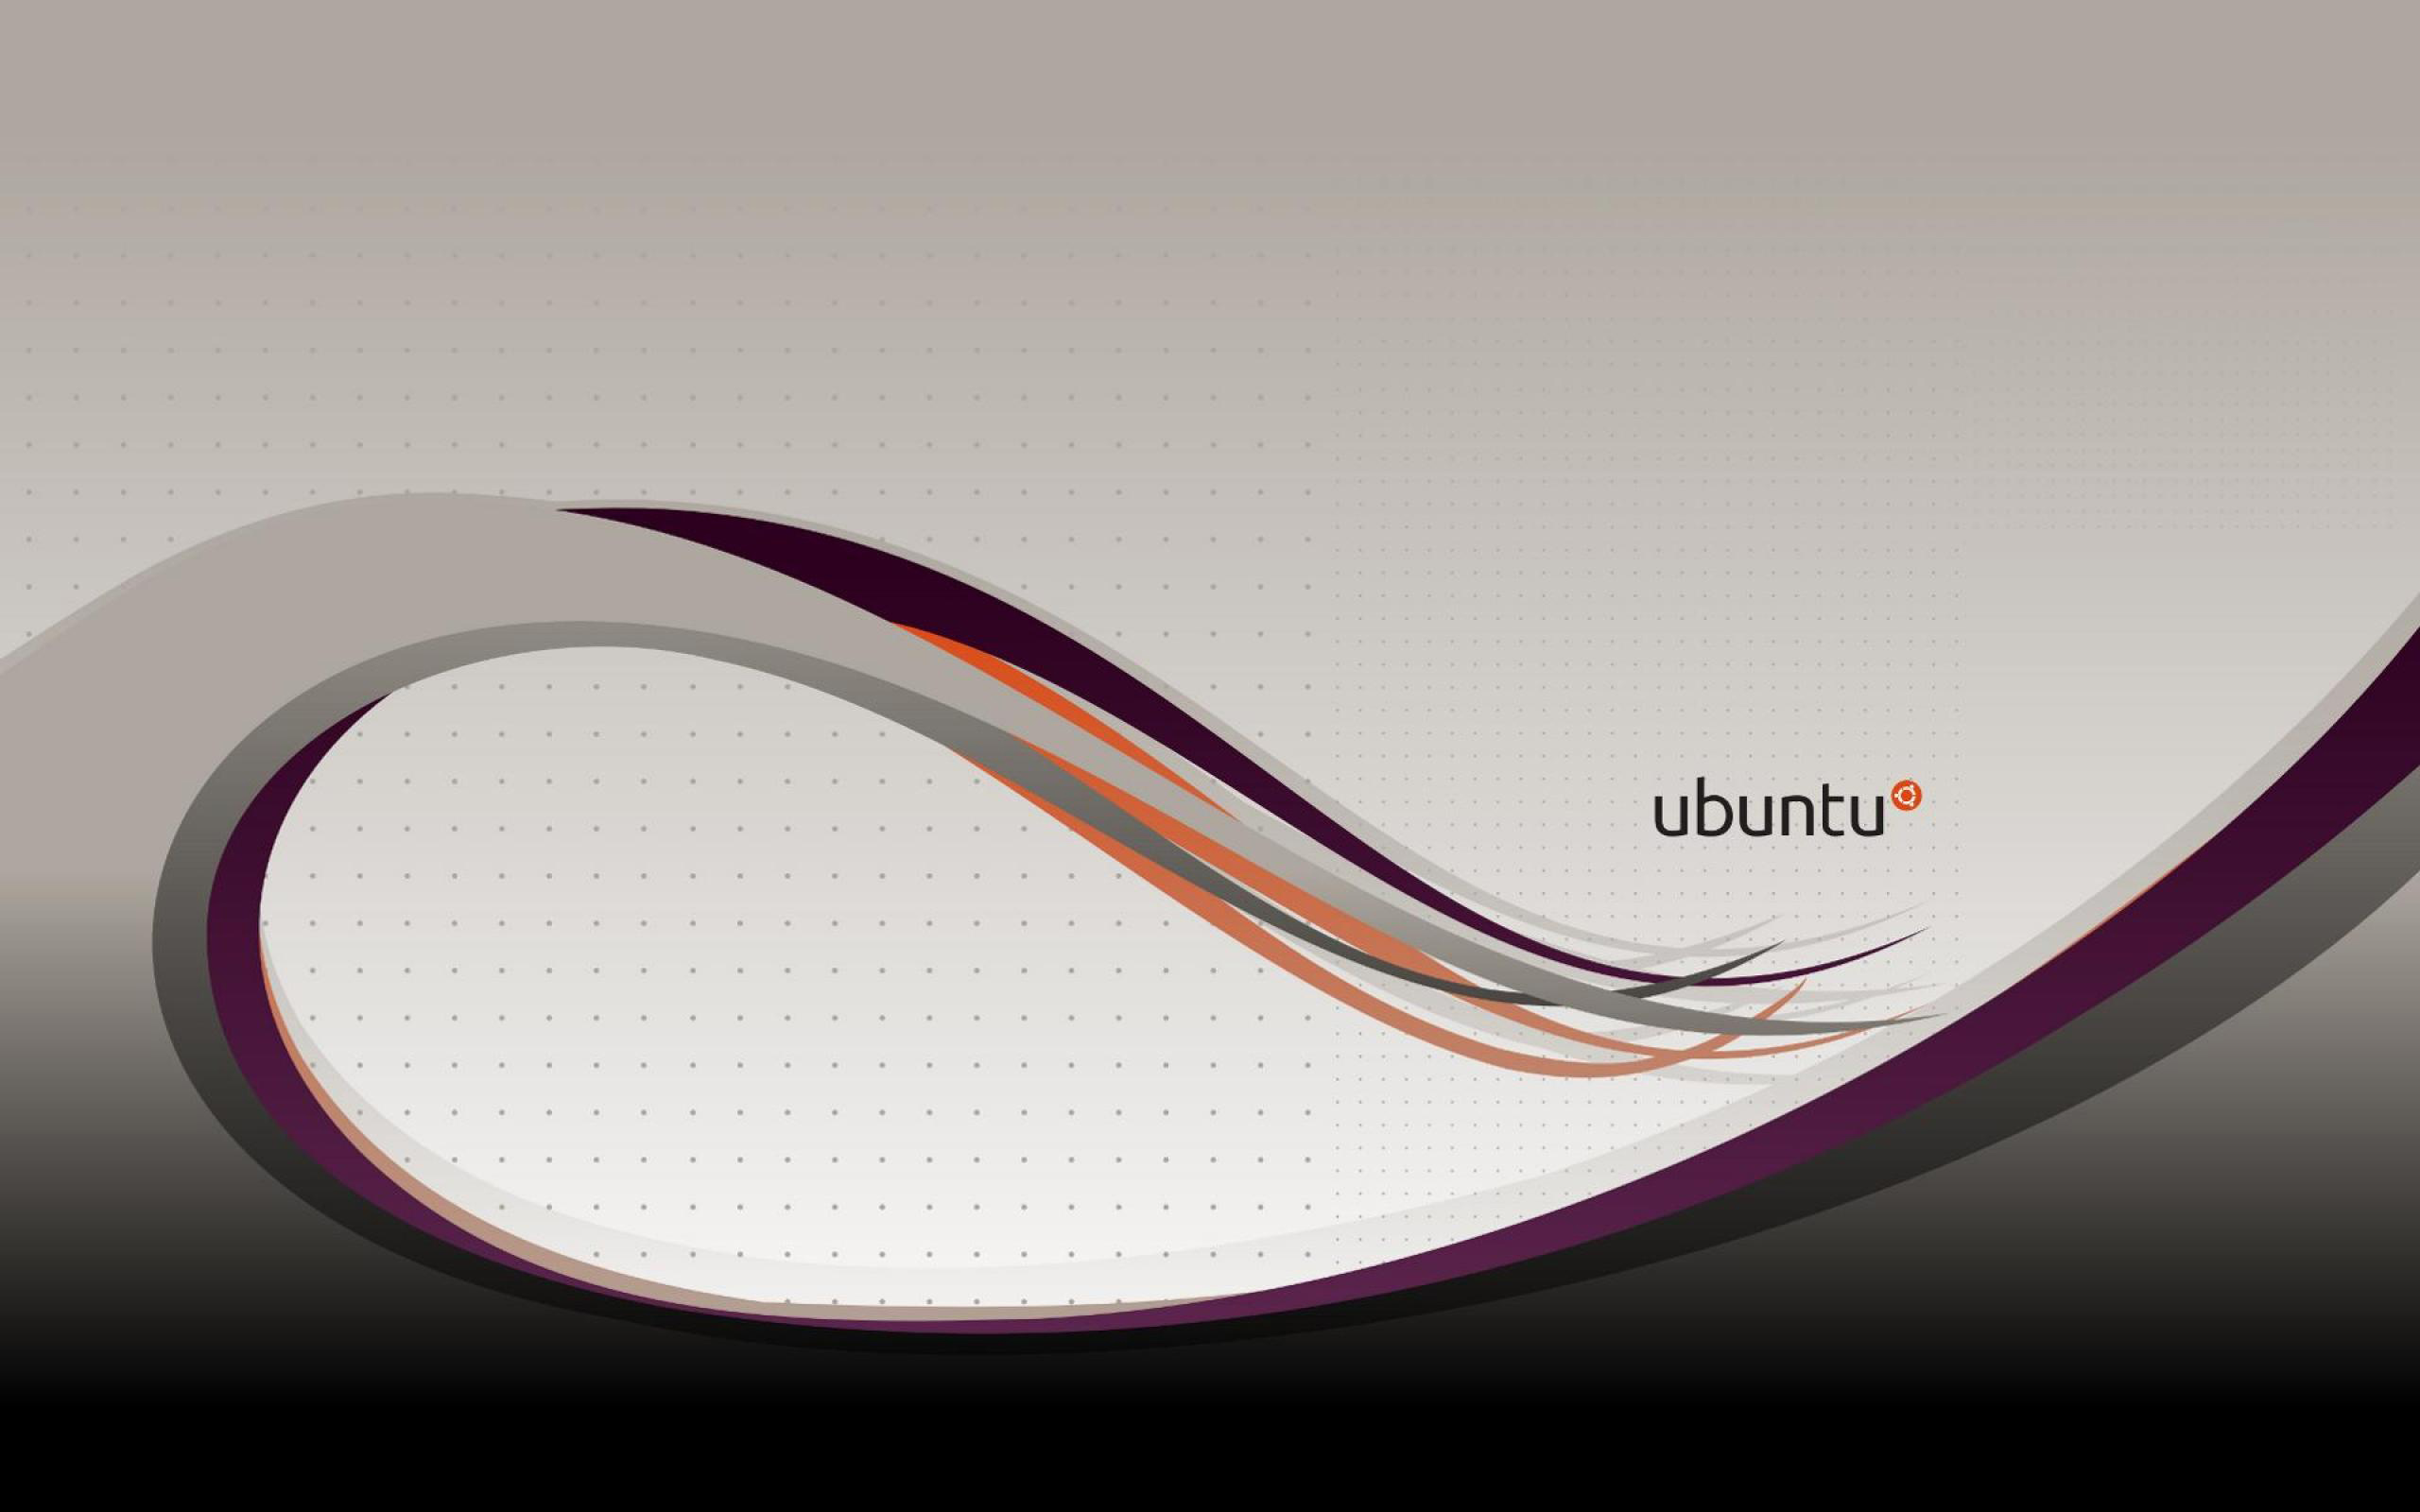 Ubuntu Wallpaper High Resolutions